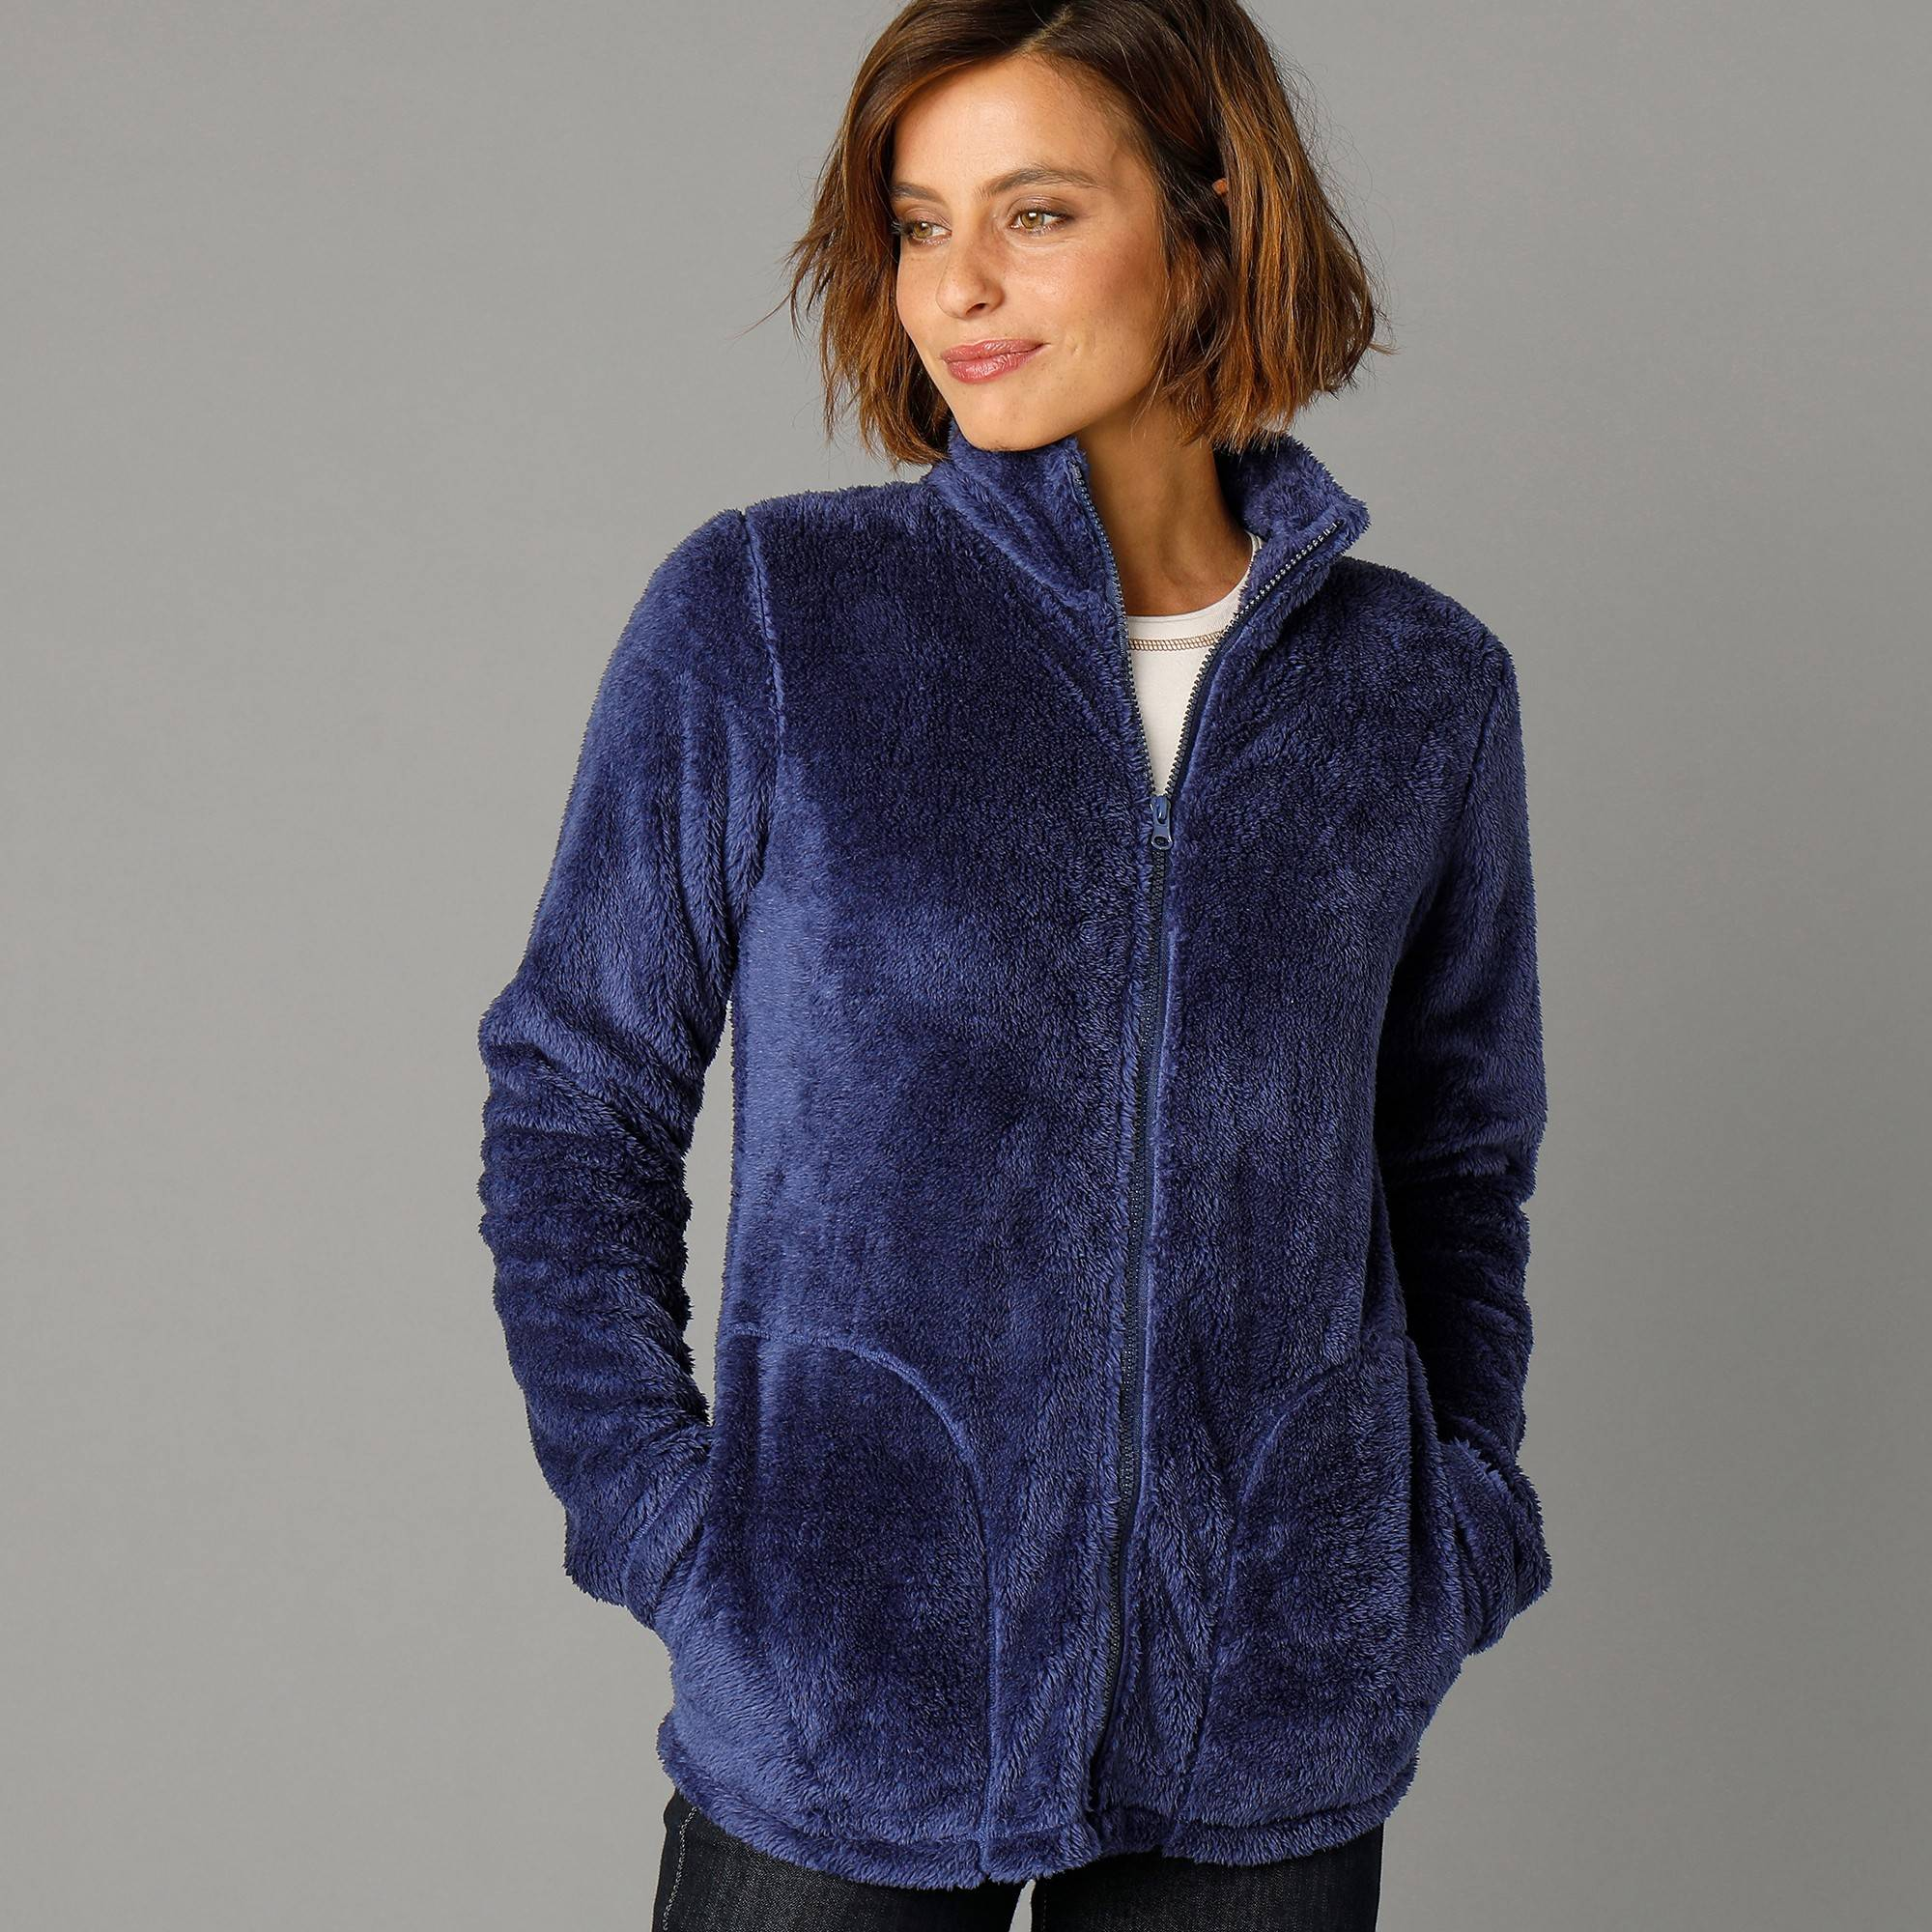 Casual Collection Veste maille peluche - Bleu - Taille : 56 - Blancheporte